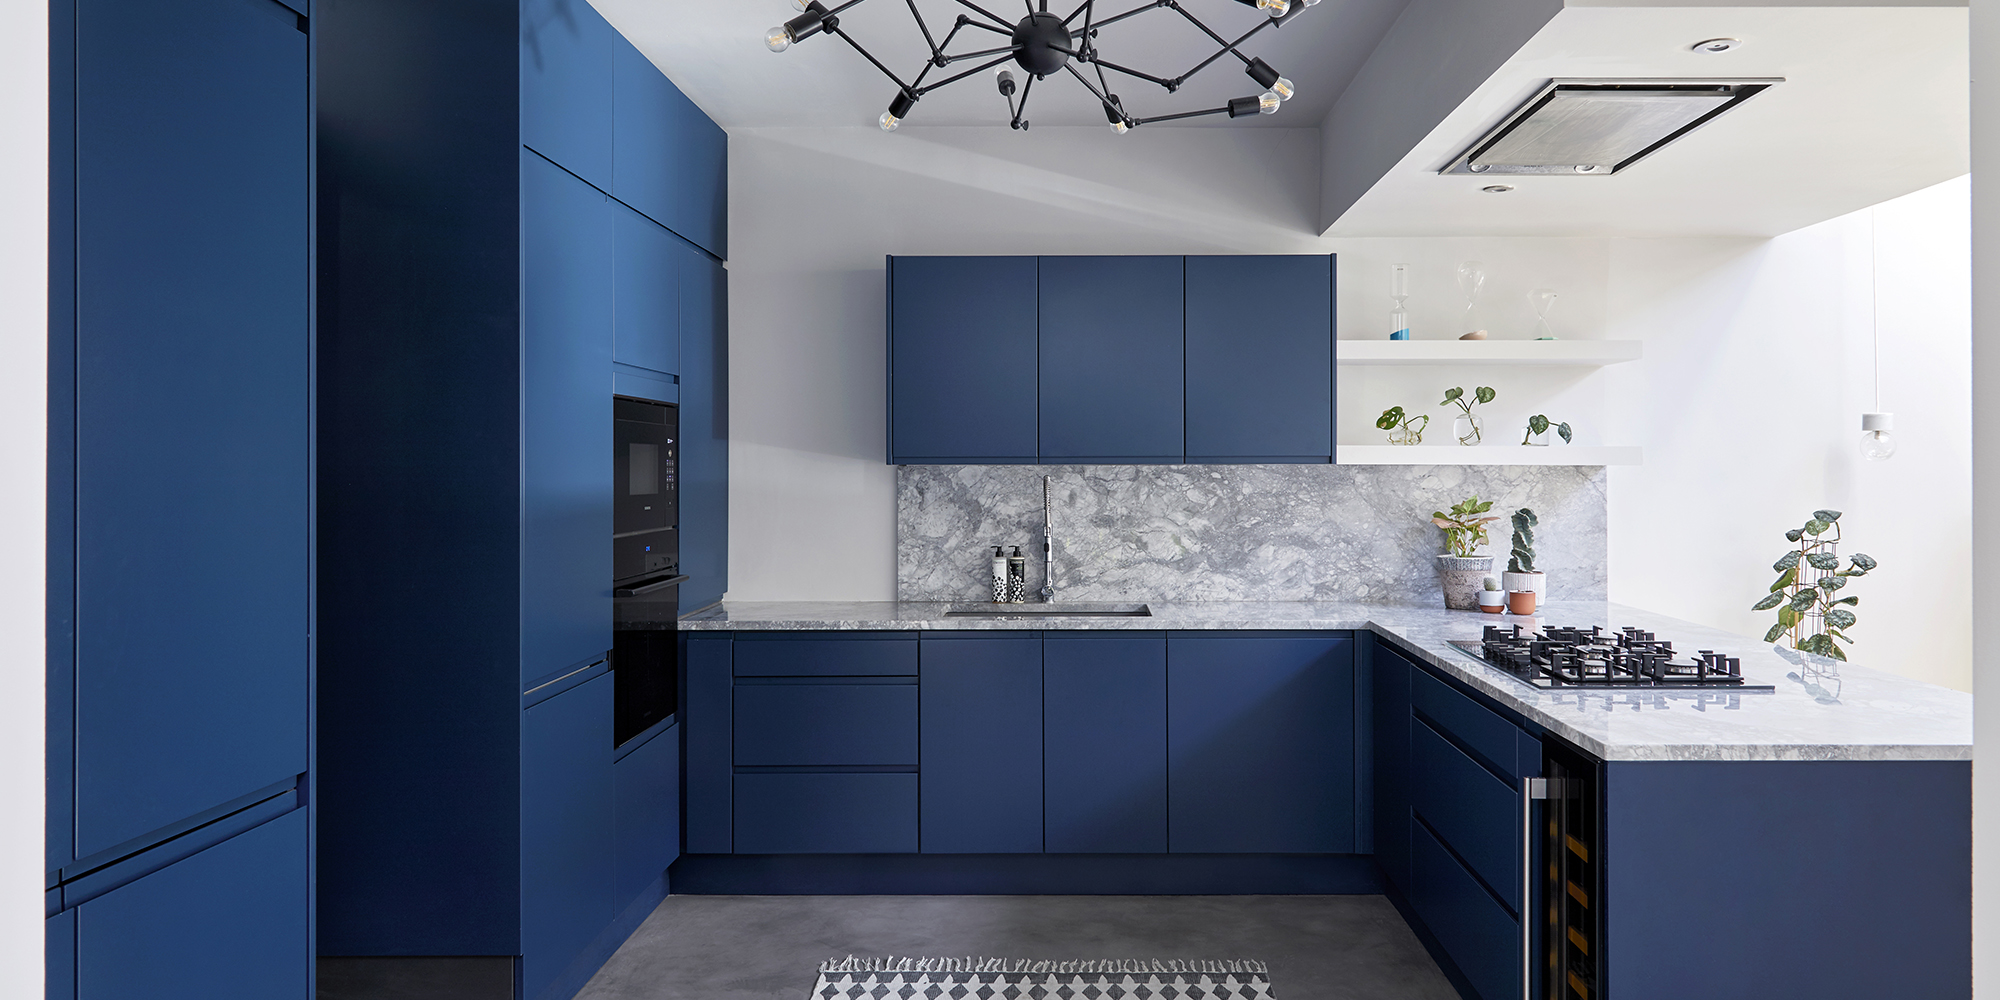 House of Sylphina London interior design - restaurant design, hotel design, shop design, retail design, hospitality design and workspace design. Striking blue and white kitchen